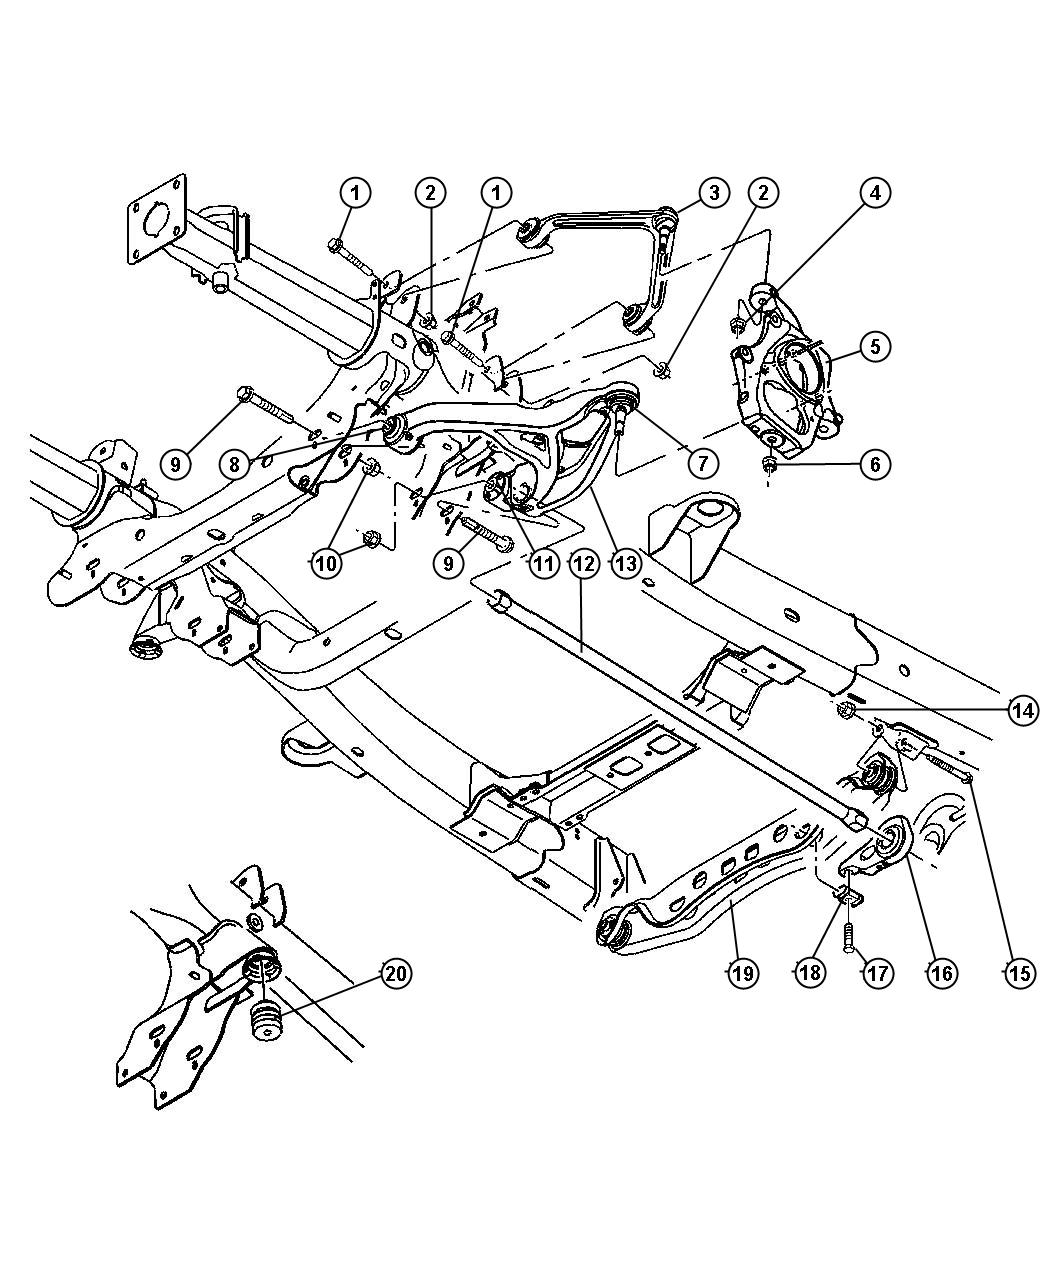 2007 dodge 1500 front axle diagram